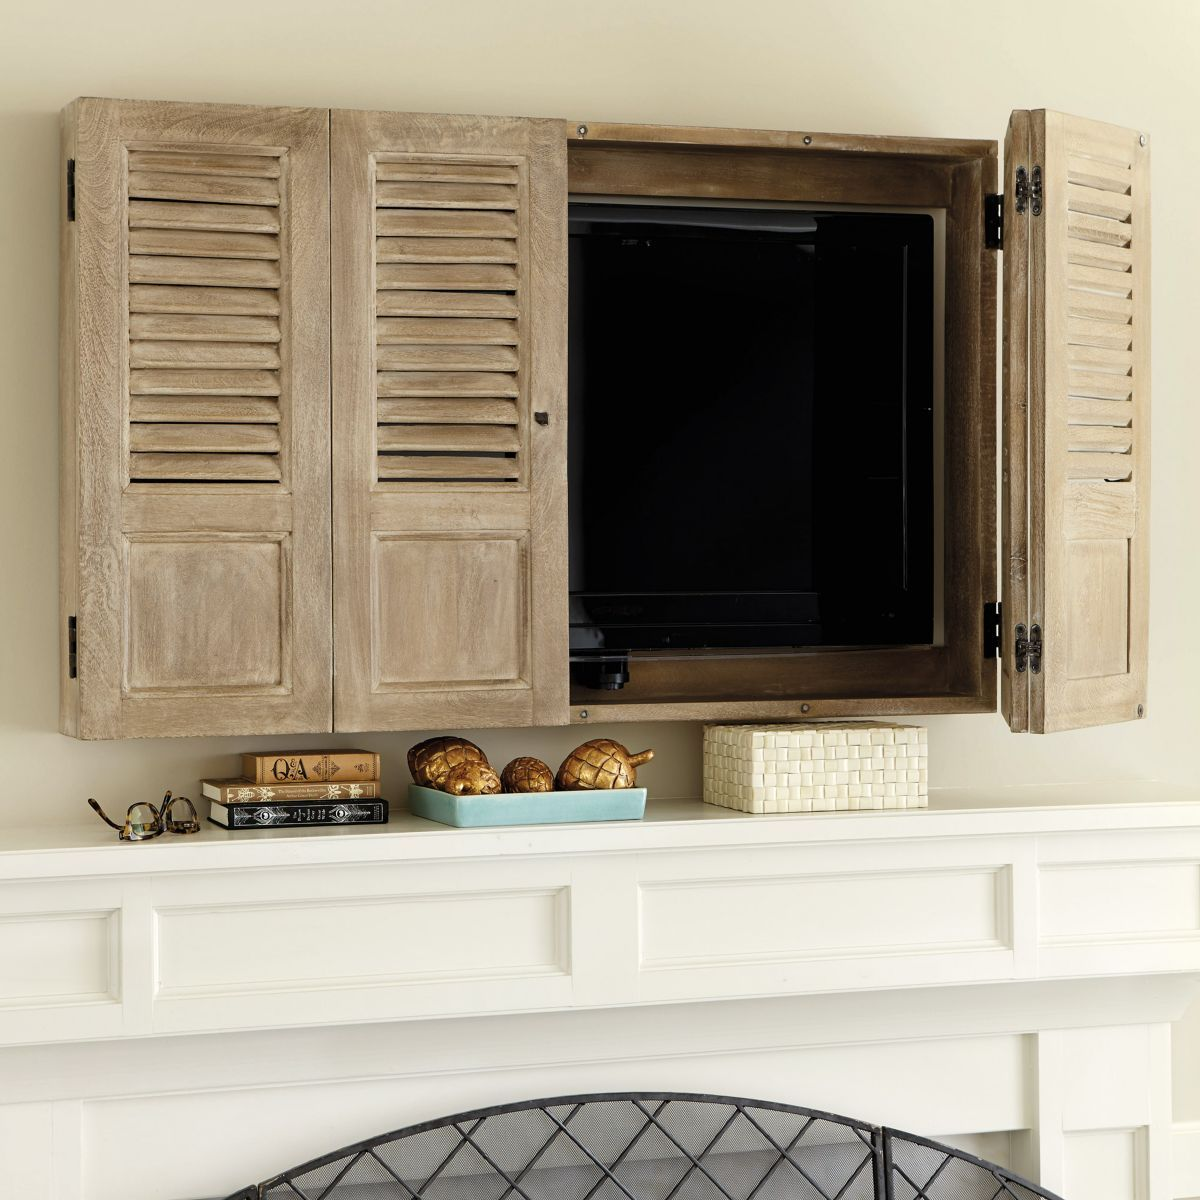 Charmant Disguise The TV With A Shutter TV Wall Cabinet   I Bet We Could Make One!!  Via Ballard Catalog